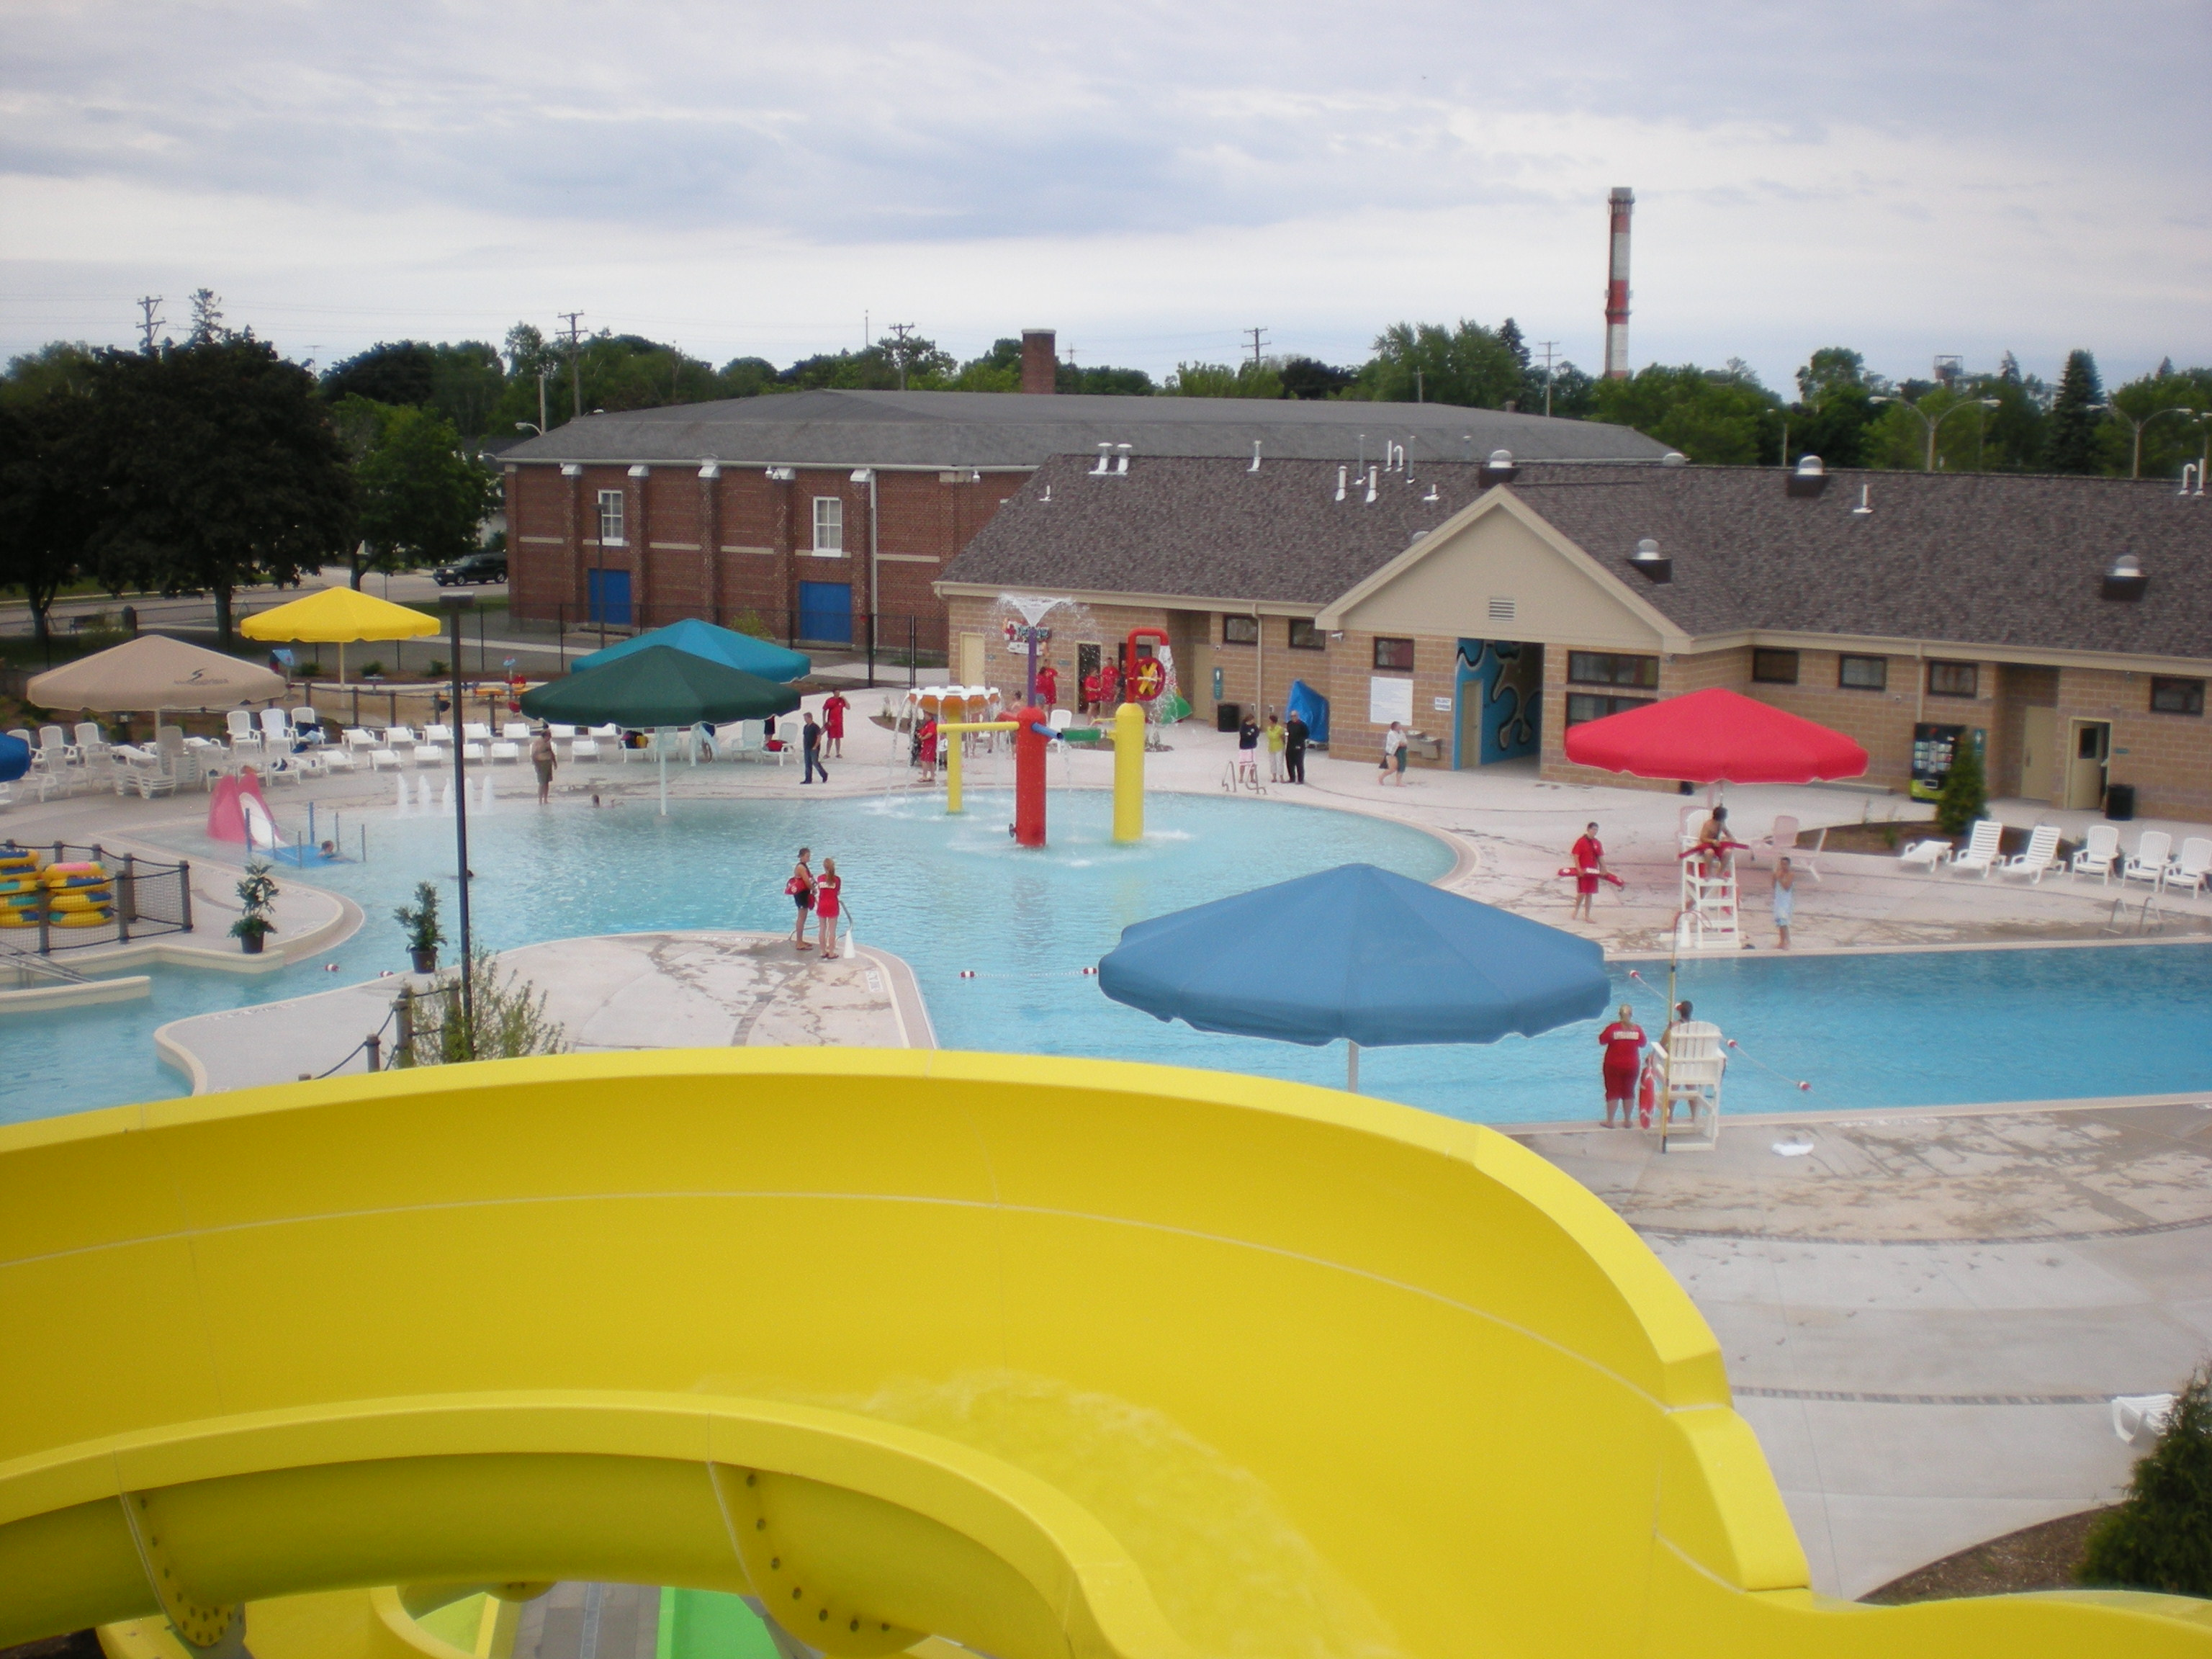 Aquatic Center View from Extreme Slide